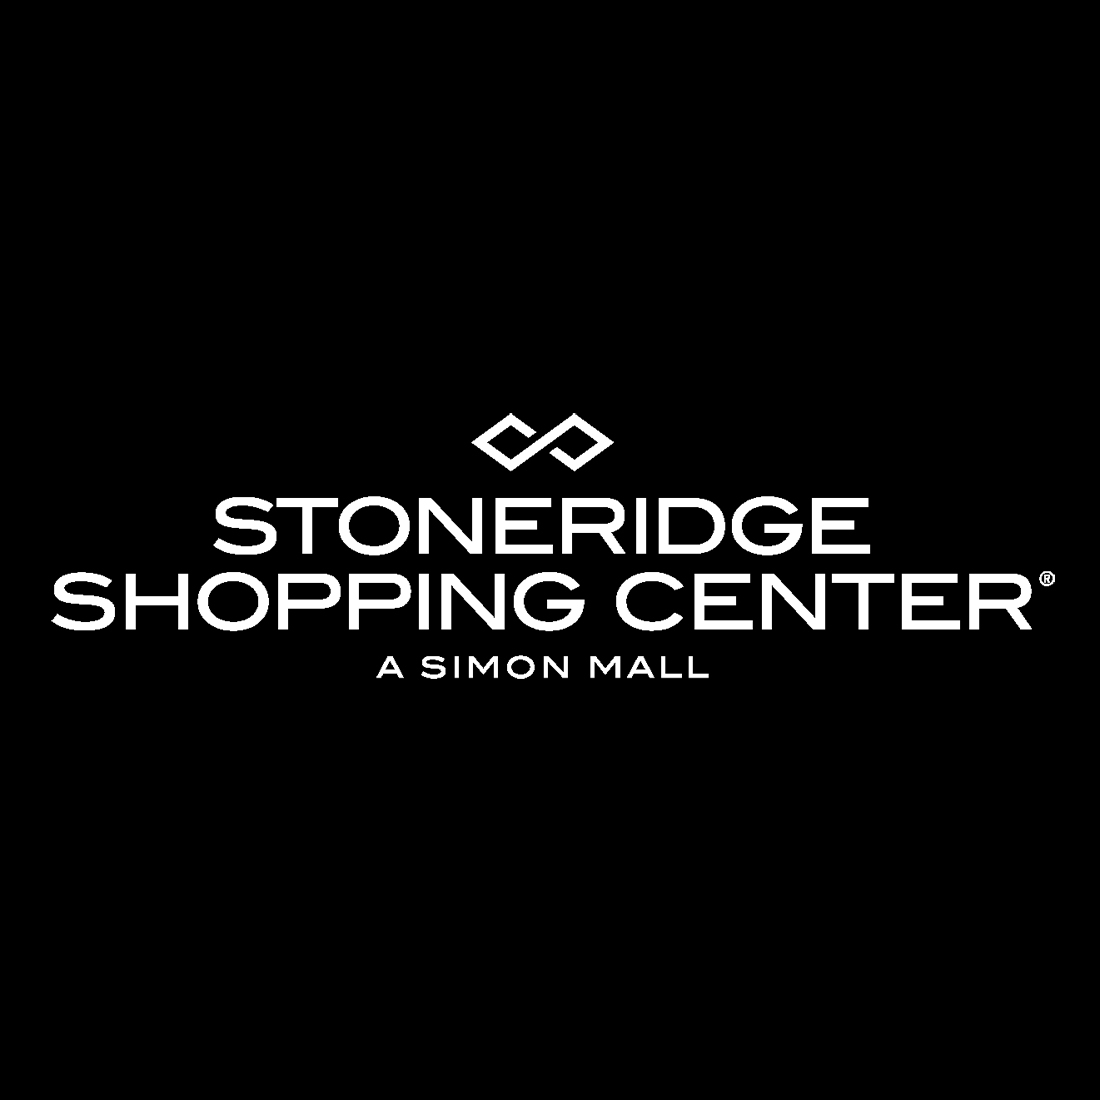 Stoneridge Shopping Center